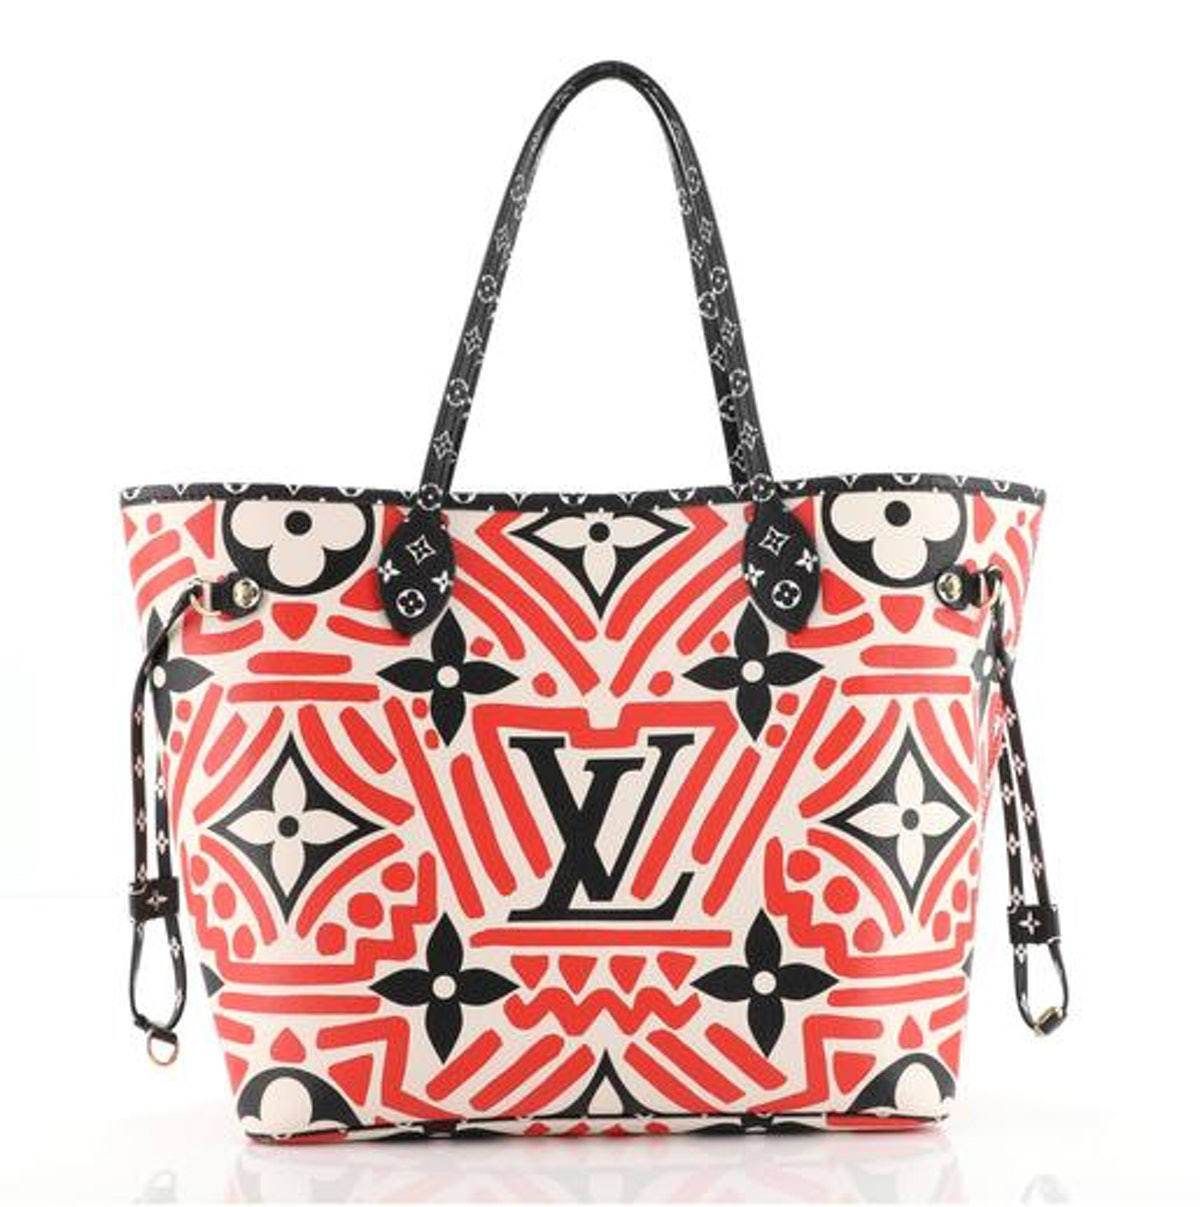 Louis Vuitton Neverfull NM Tote Limited Edition Crafty Monogram